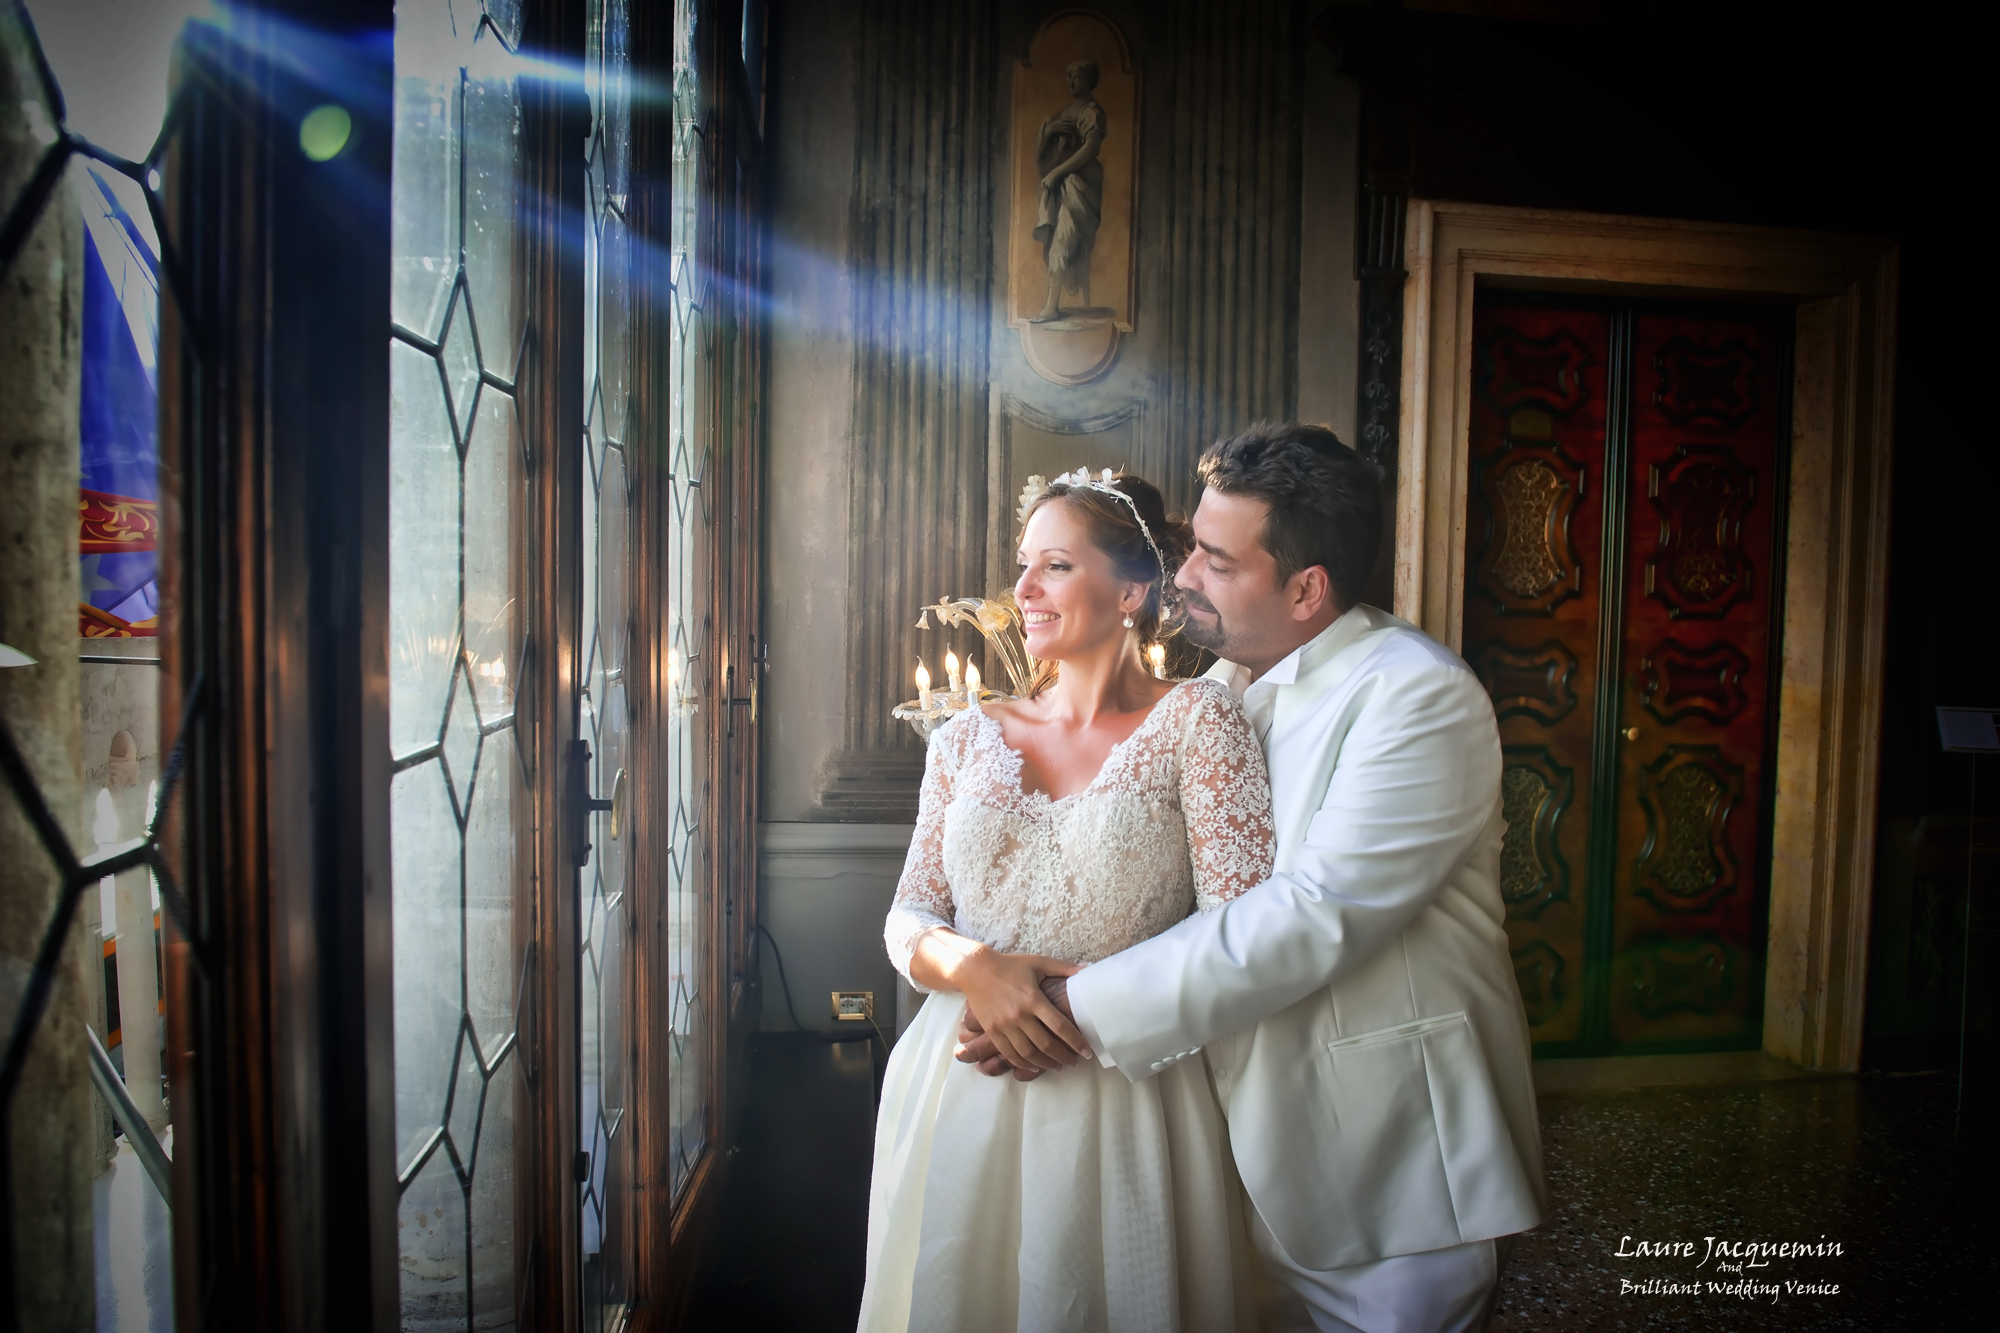 venice photography symbolique wedding palace palazzo photogapher engagment LAURE JACQUEMIN  (23)